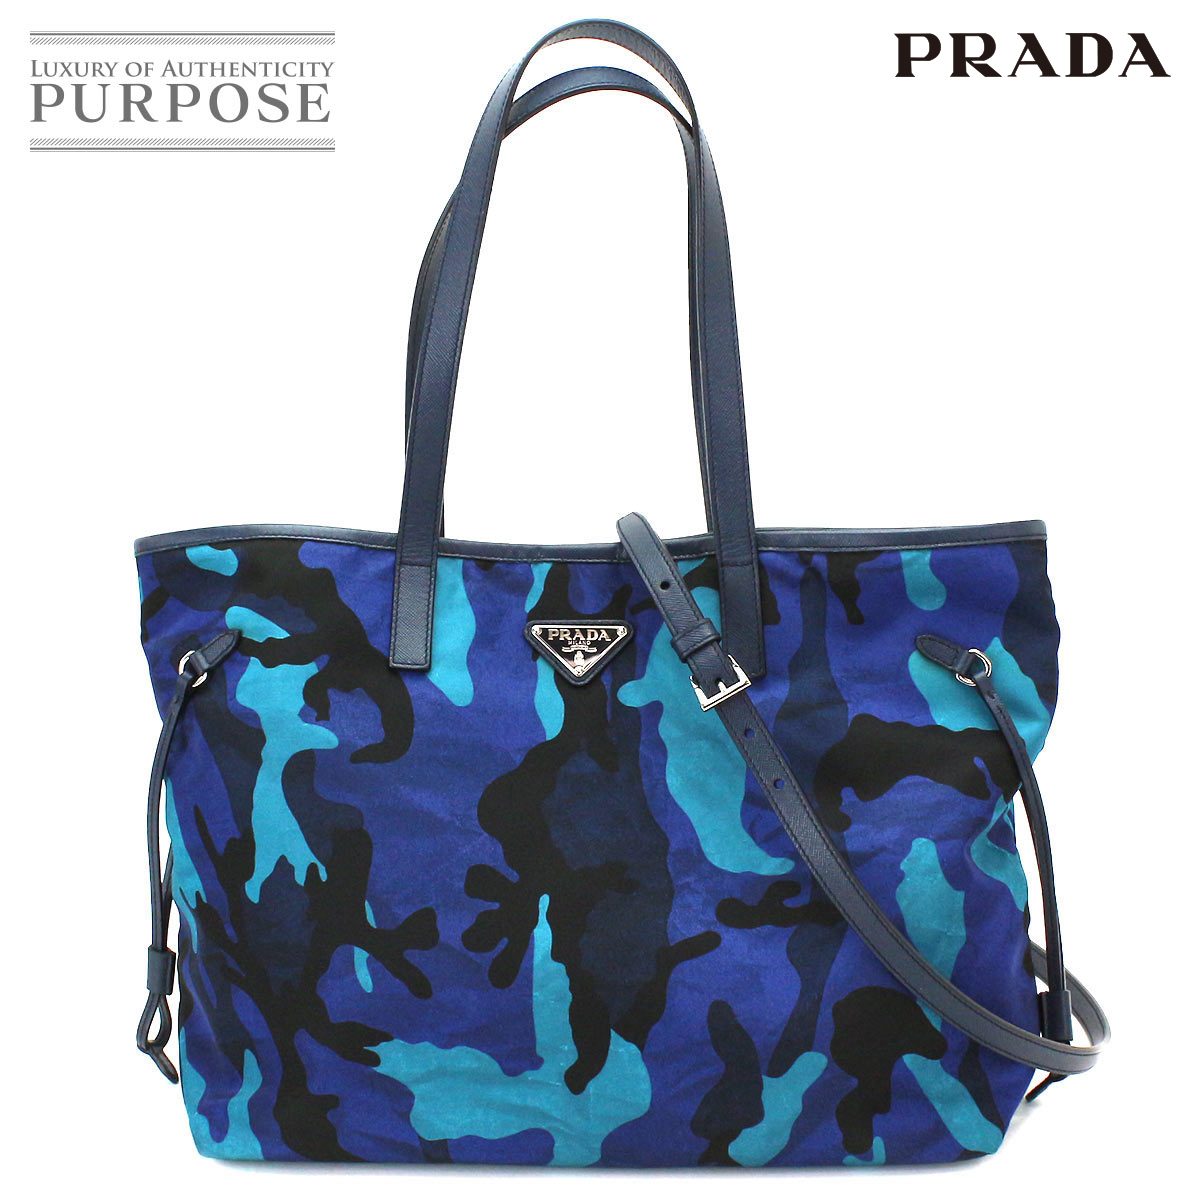 58470bec633 Prada PRADA nylon 2way Thoth shoulder bag leather camouflage camouflage  pattern blue B4001T [used] brand